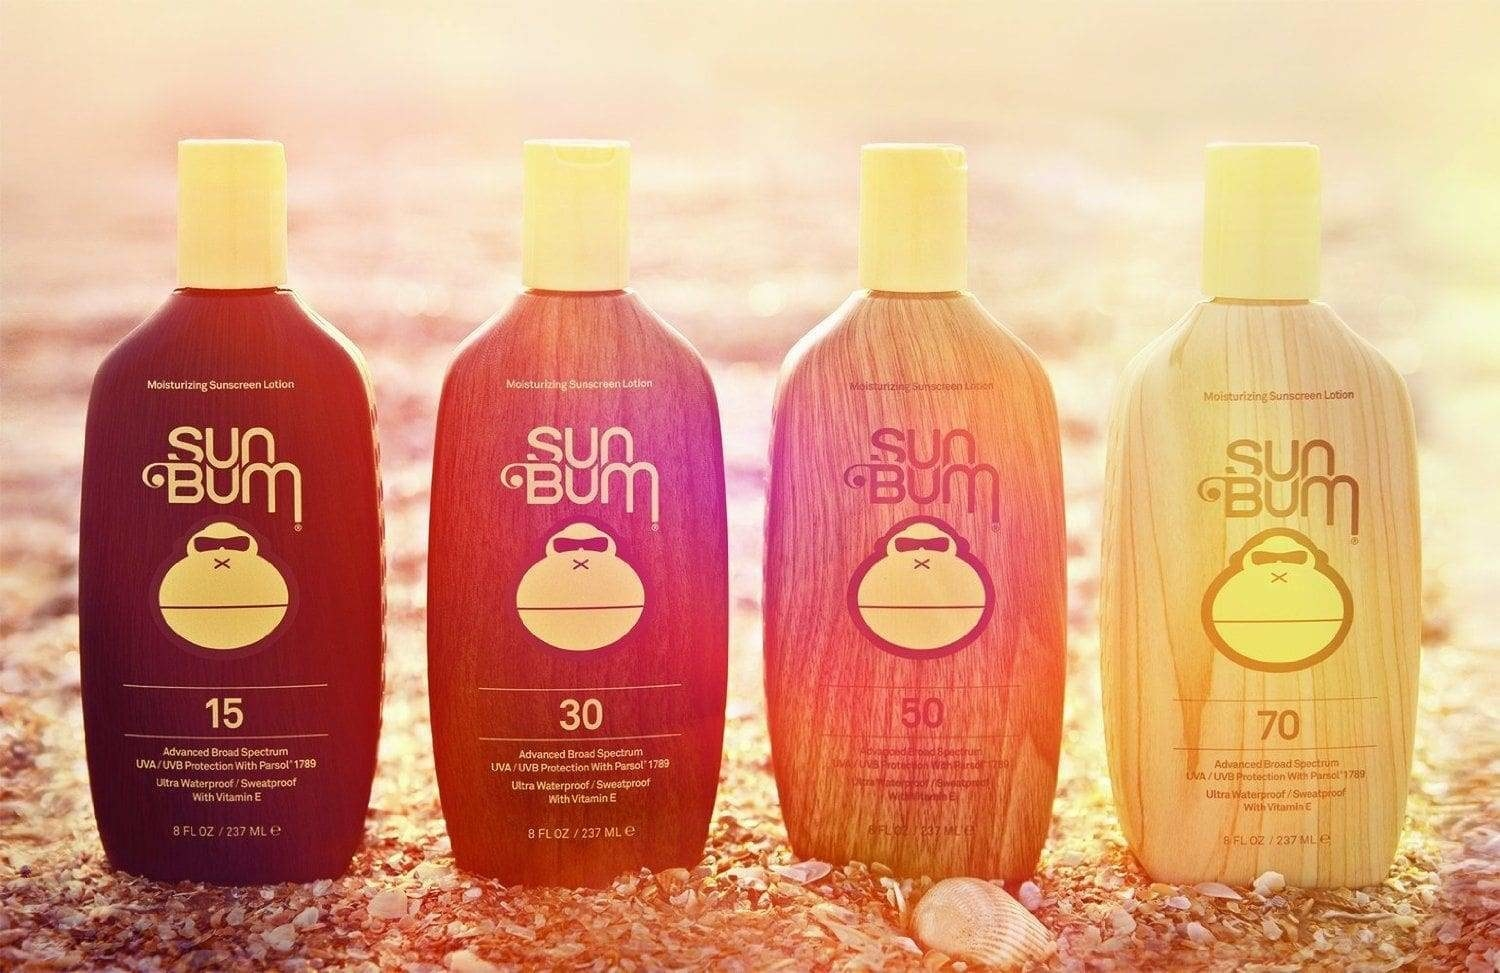 Four bottles of Sun Bum of various SPFs in the sun